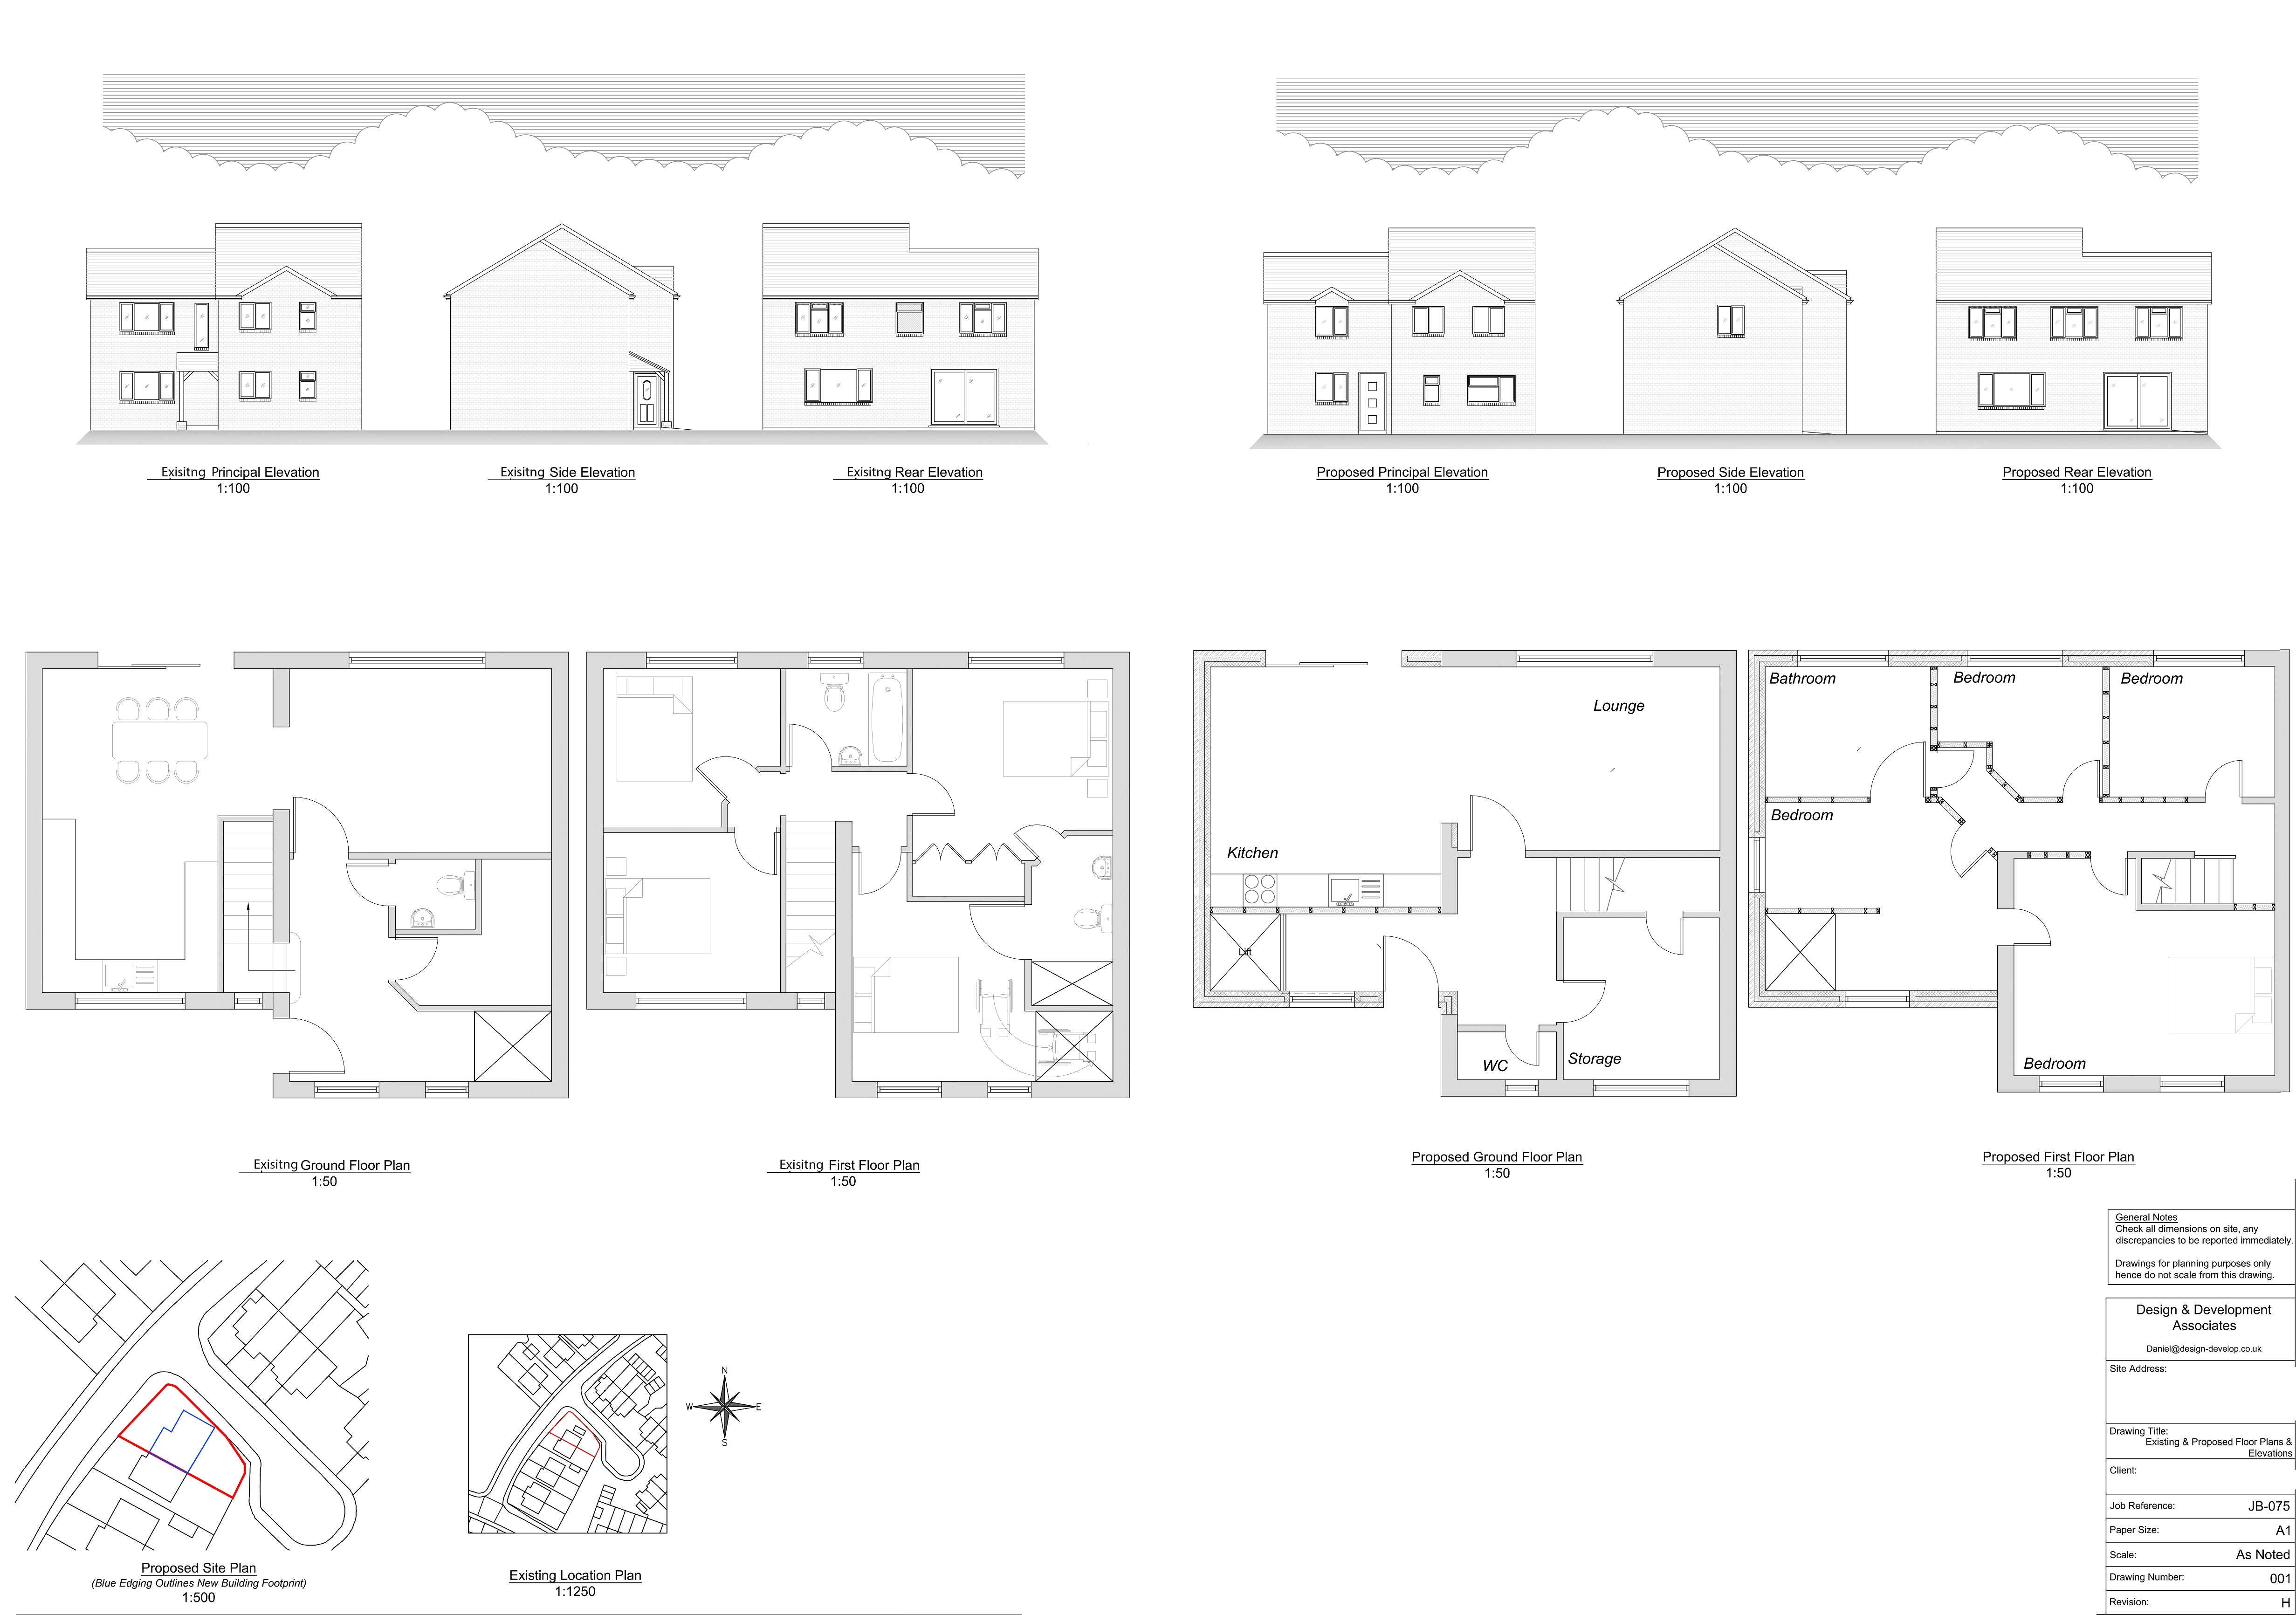 Existing and Proposed Floor Plans